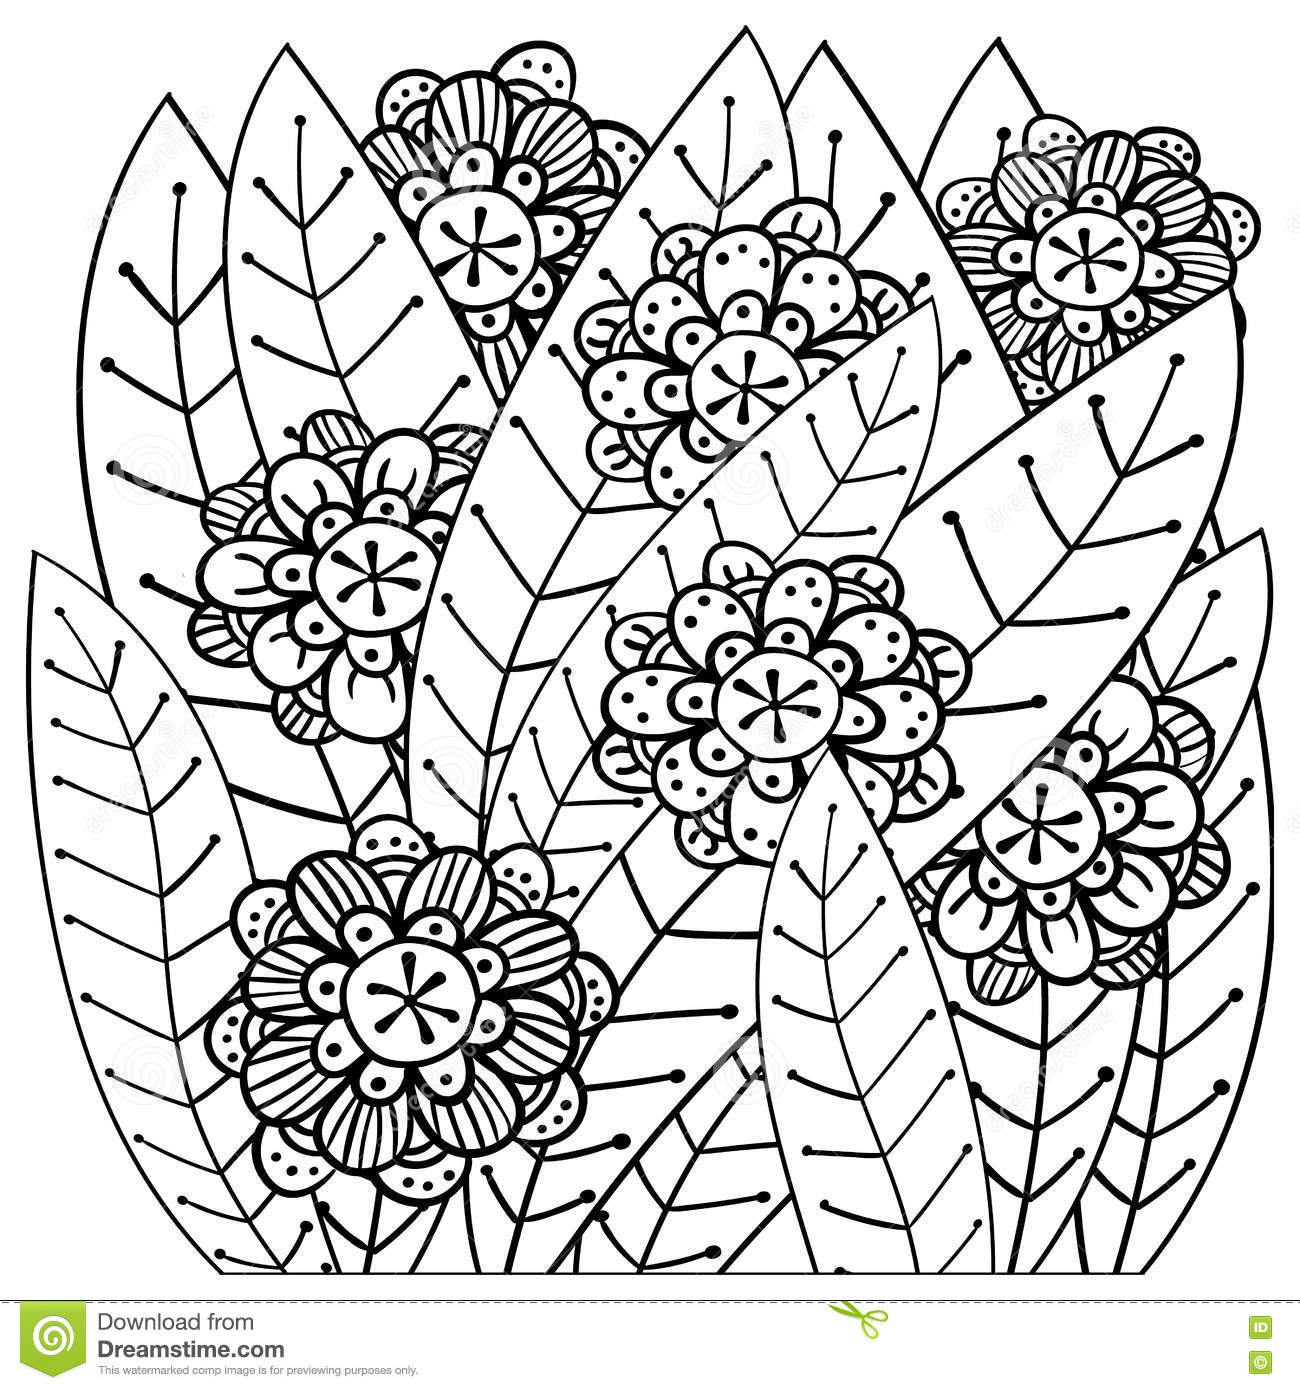 Whimsical designs coloring book - Royalty Free Vector Download Whimsical Garden Adult Coloring Book